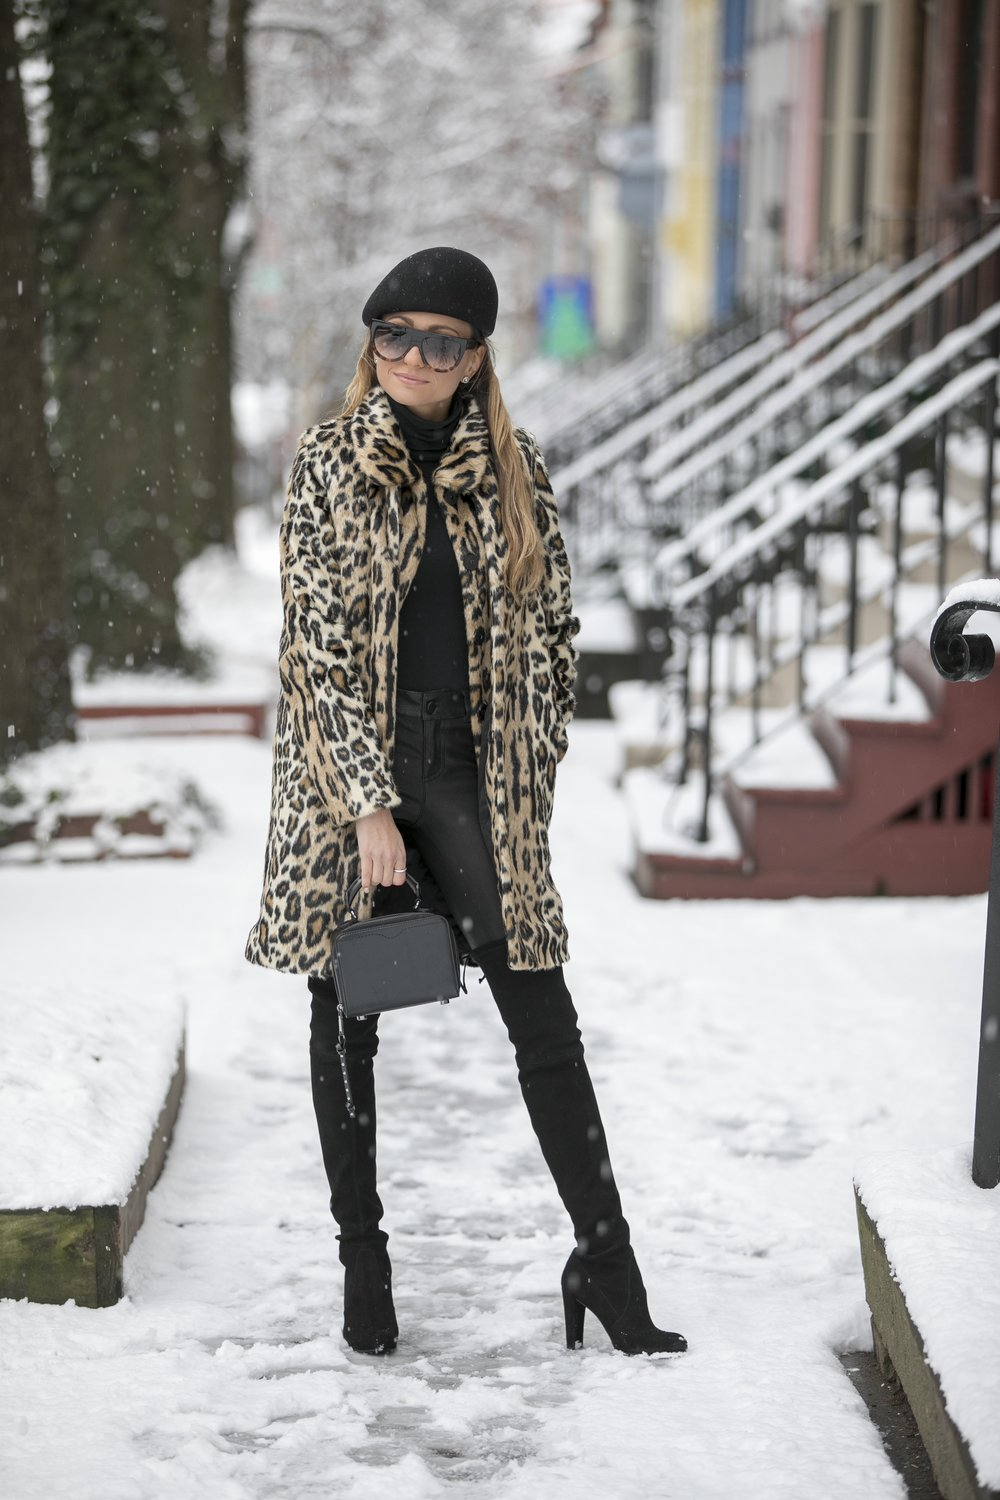 stella mccartney beret, alice and olivia leopard coat, leather leggings, stuart weitzman over the knee boots and rebecca mink bag